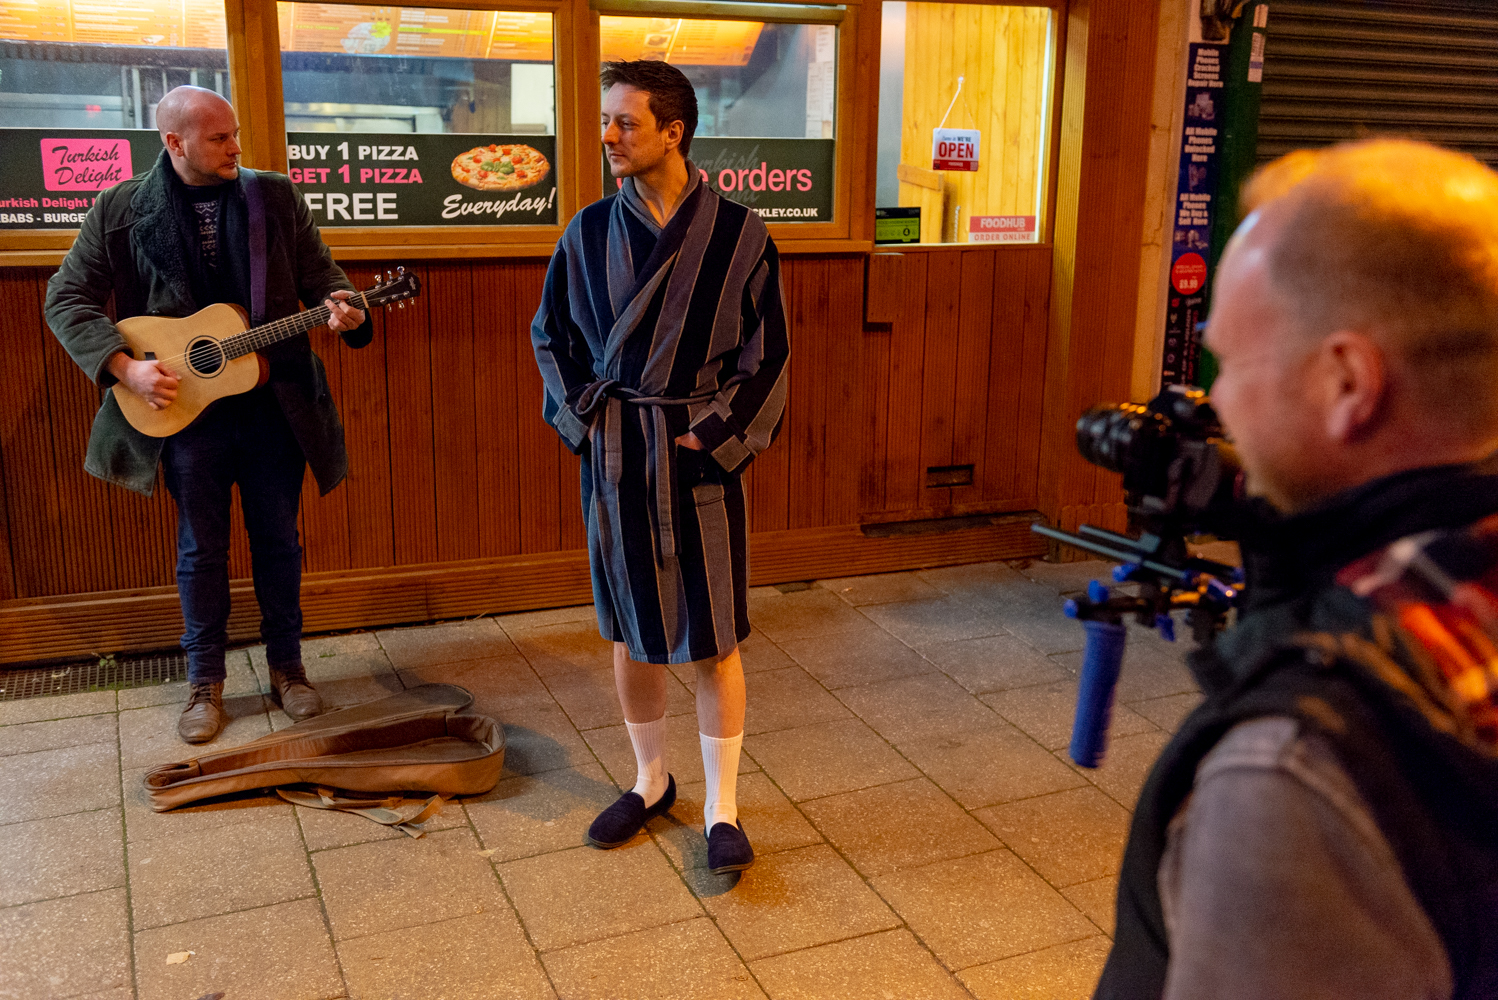 Blokes Comedy Film - Behind The Scenes